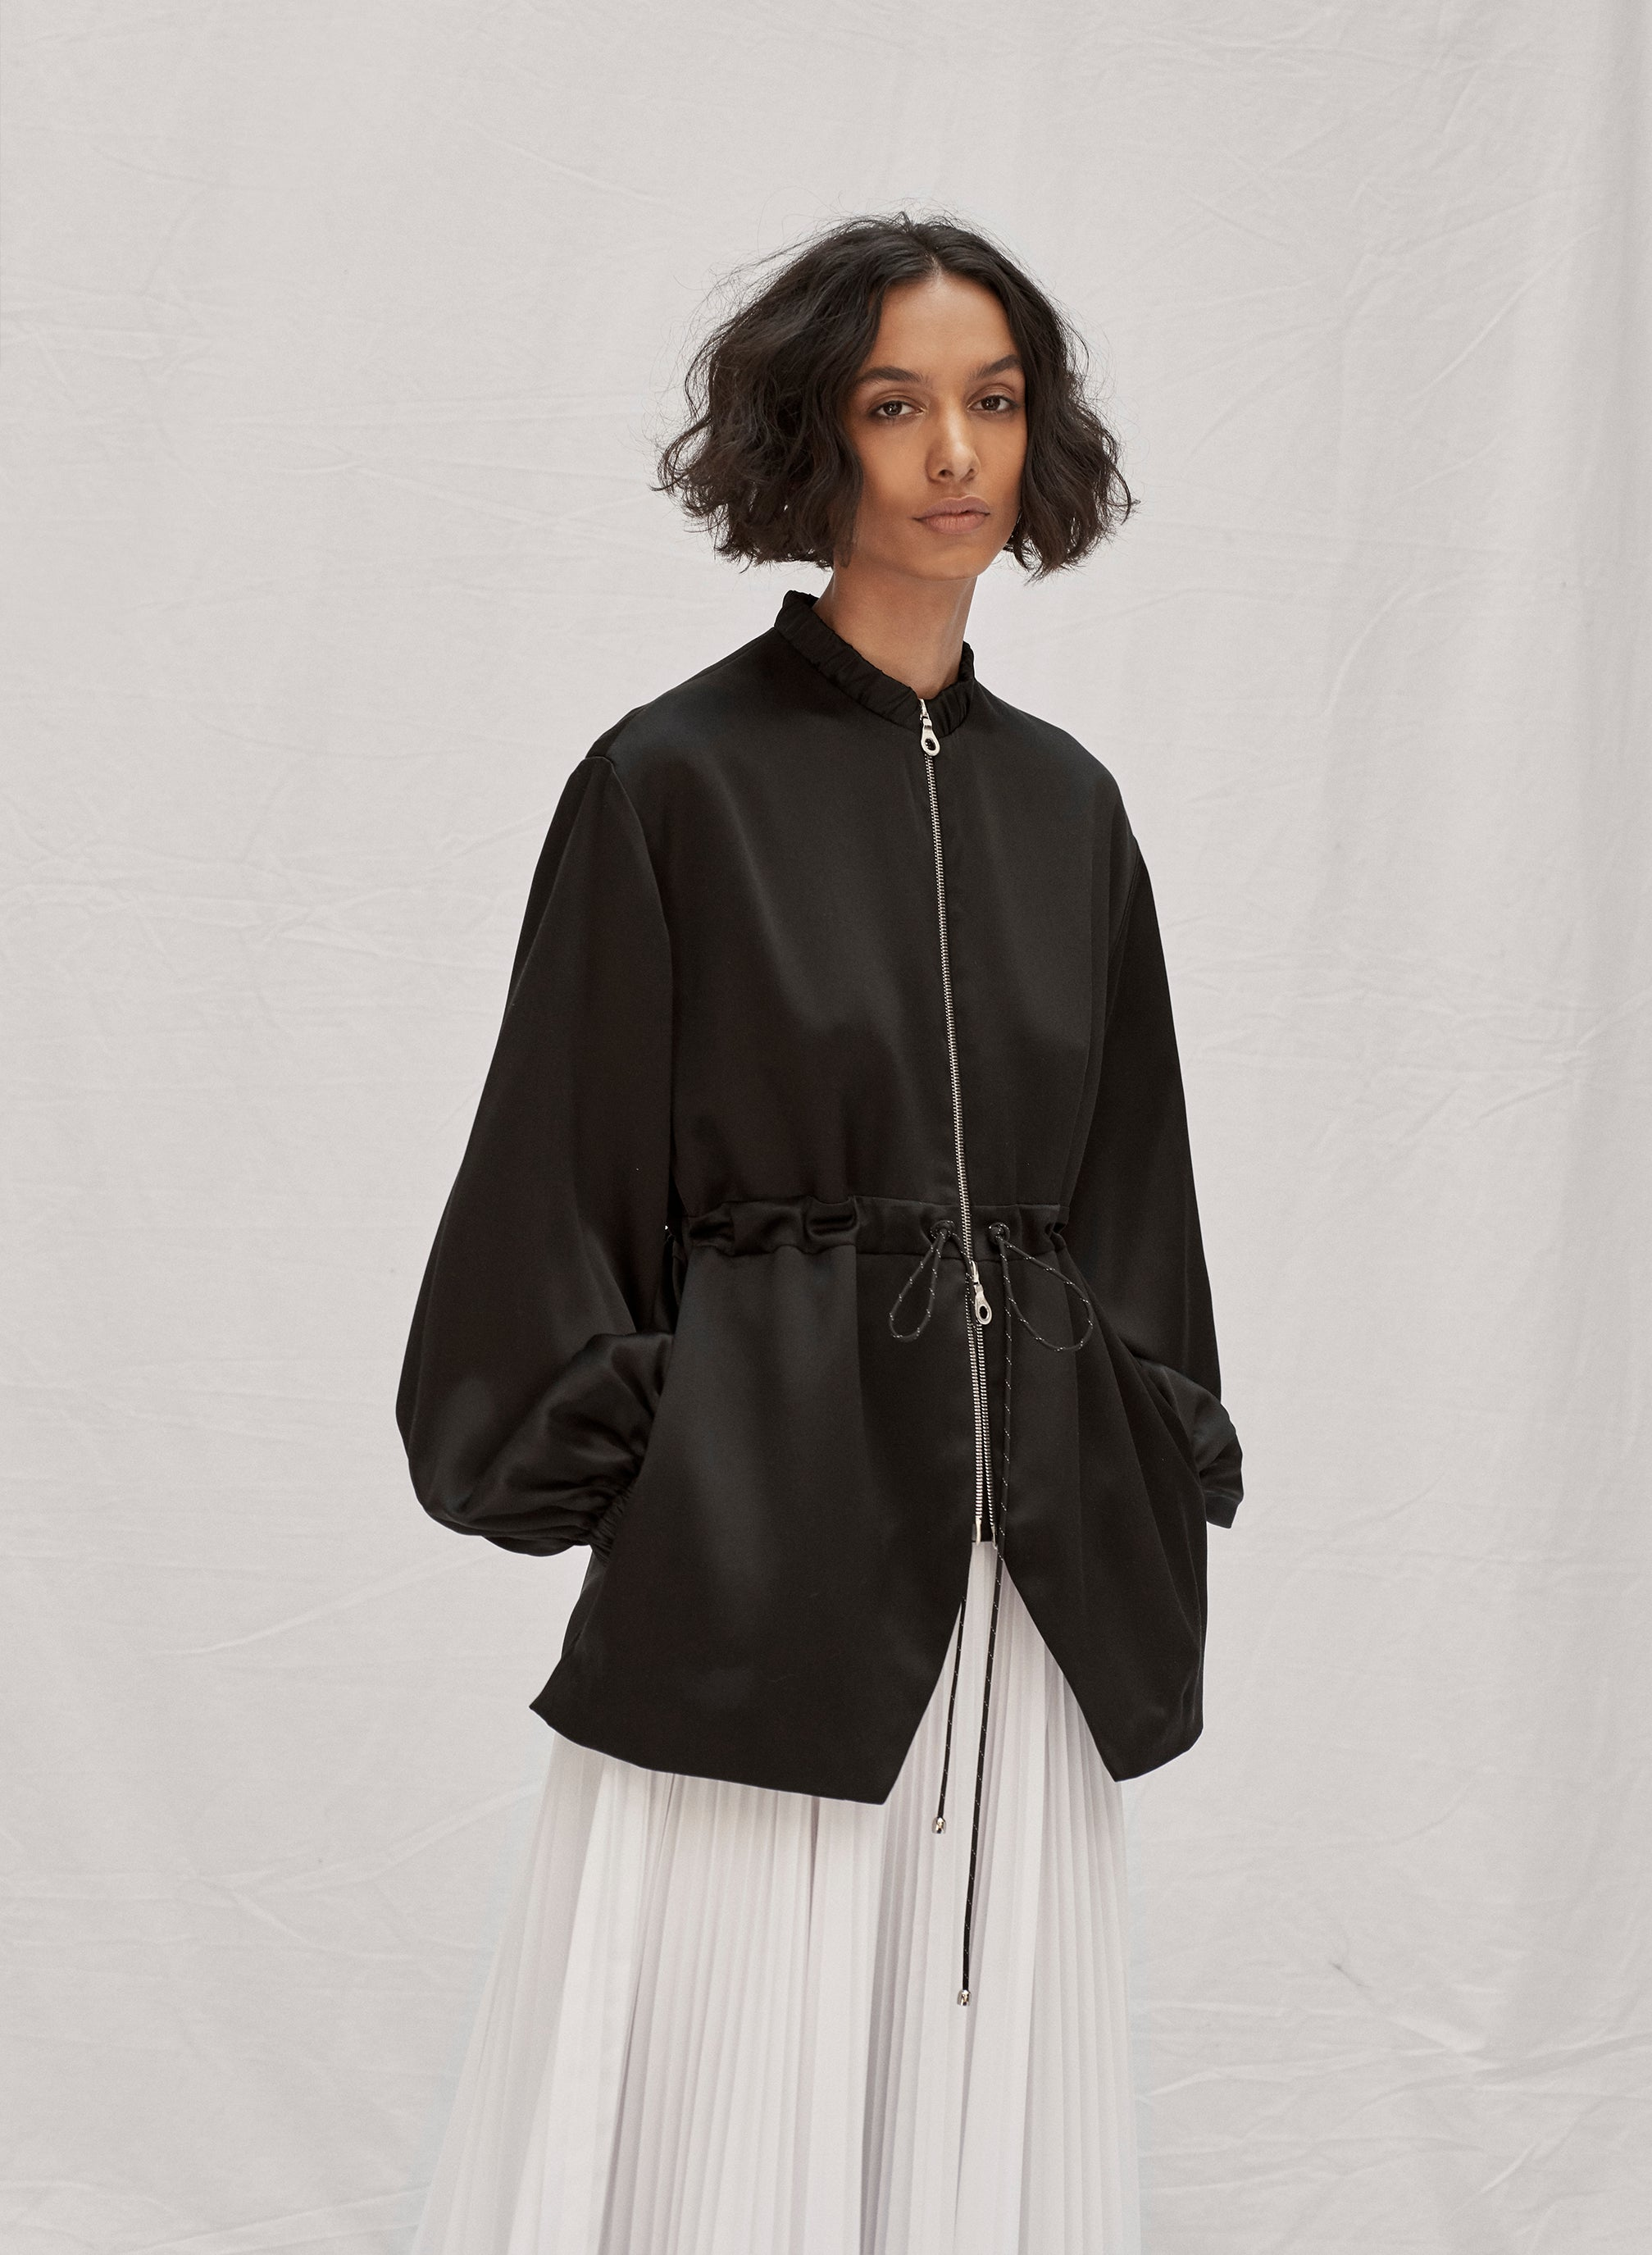 claudia li pre fall winter 2019 black silk drawstring bomber jacket